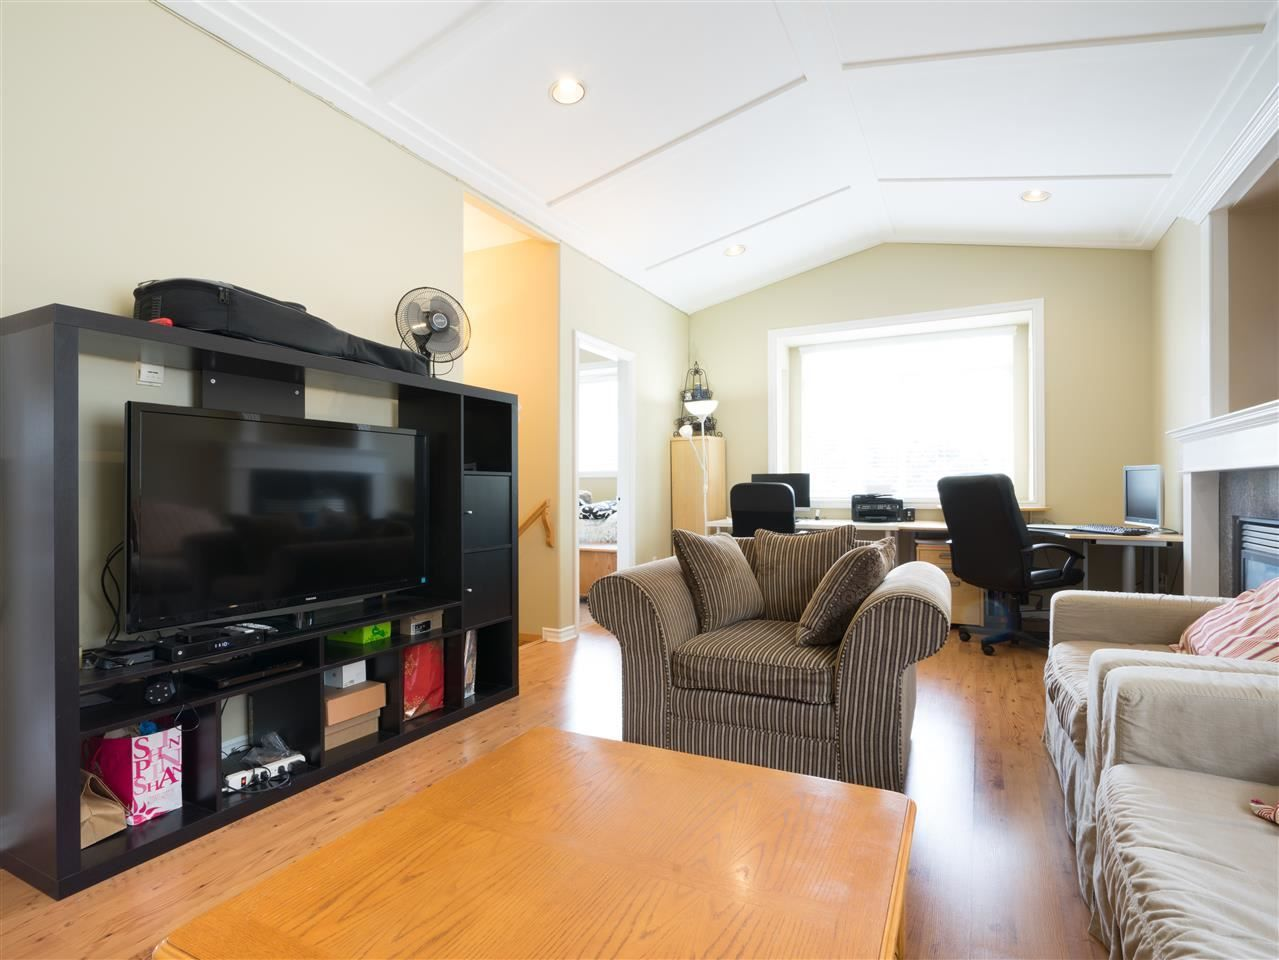 Photo 4: Photos: 2052 WESTVIEW Drive in North Vancouver: Central Lonsdale House for sale : MLS®# R2530544